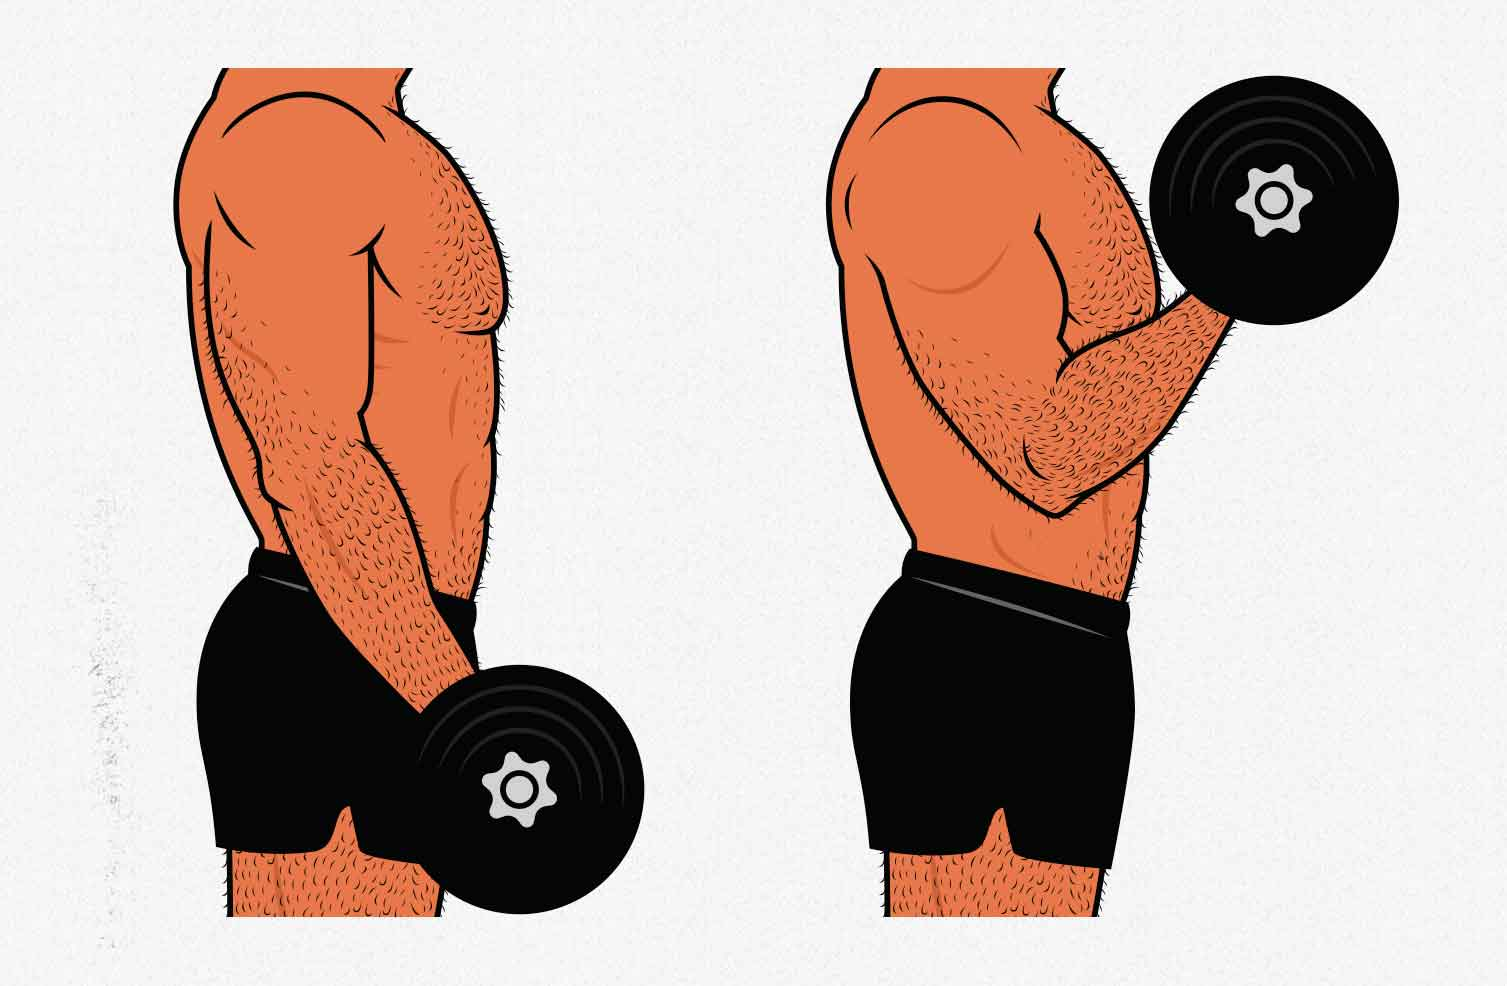 Illustration showing how to do dumbbell biceps curls.